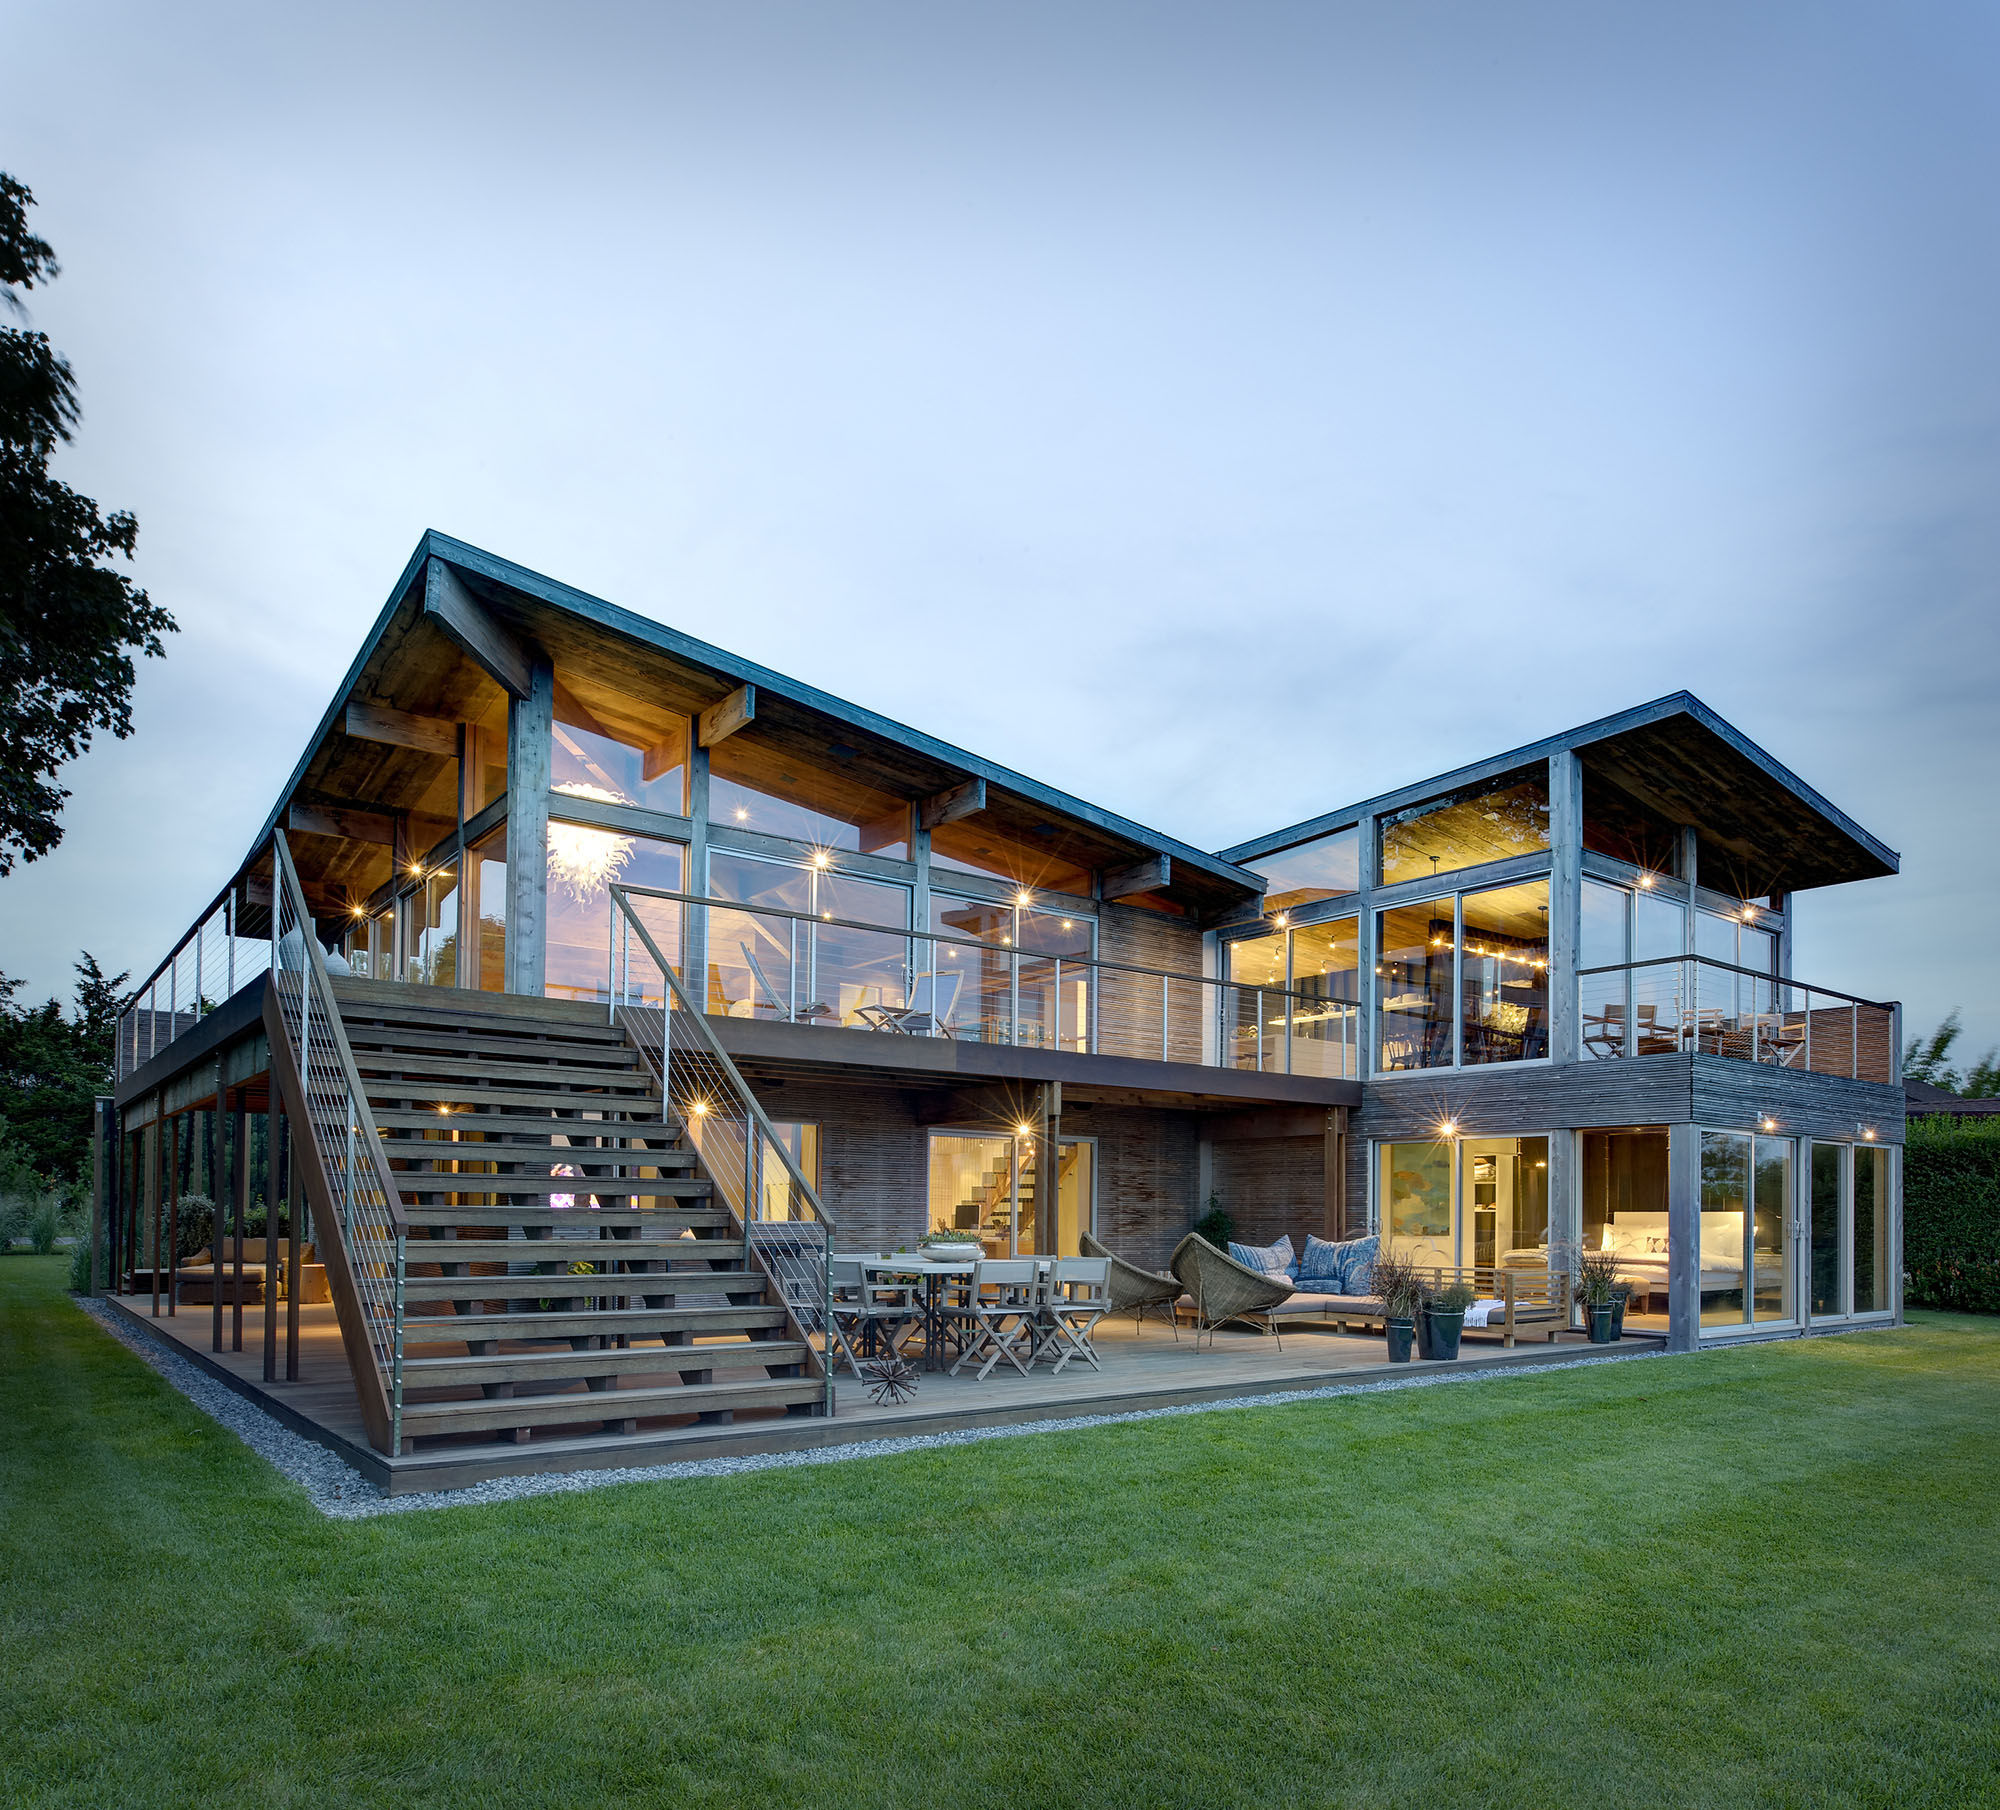 Hurricane-Proof Wood And Steel Waterfront Home On Long Island ...